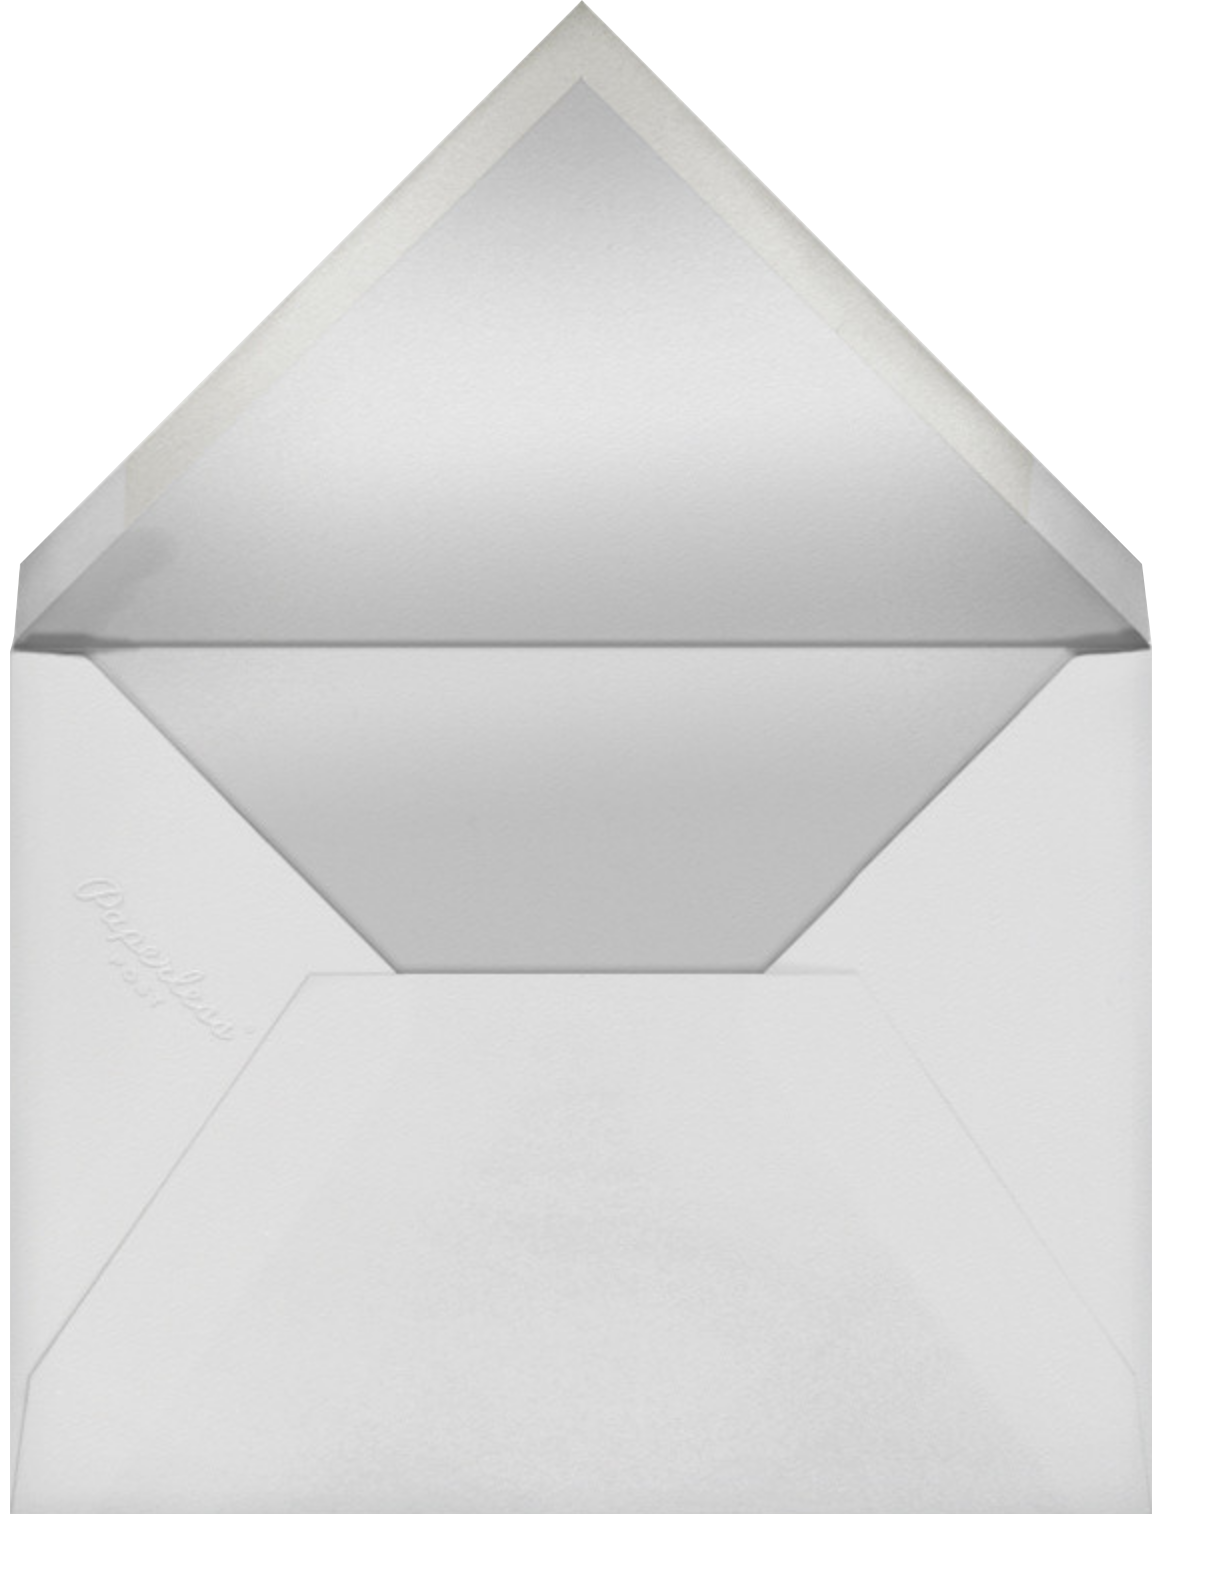 Geometry Set - Paperless Post - Just because - envelope back